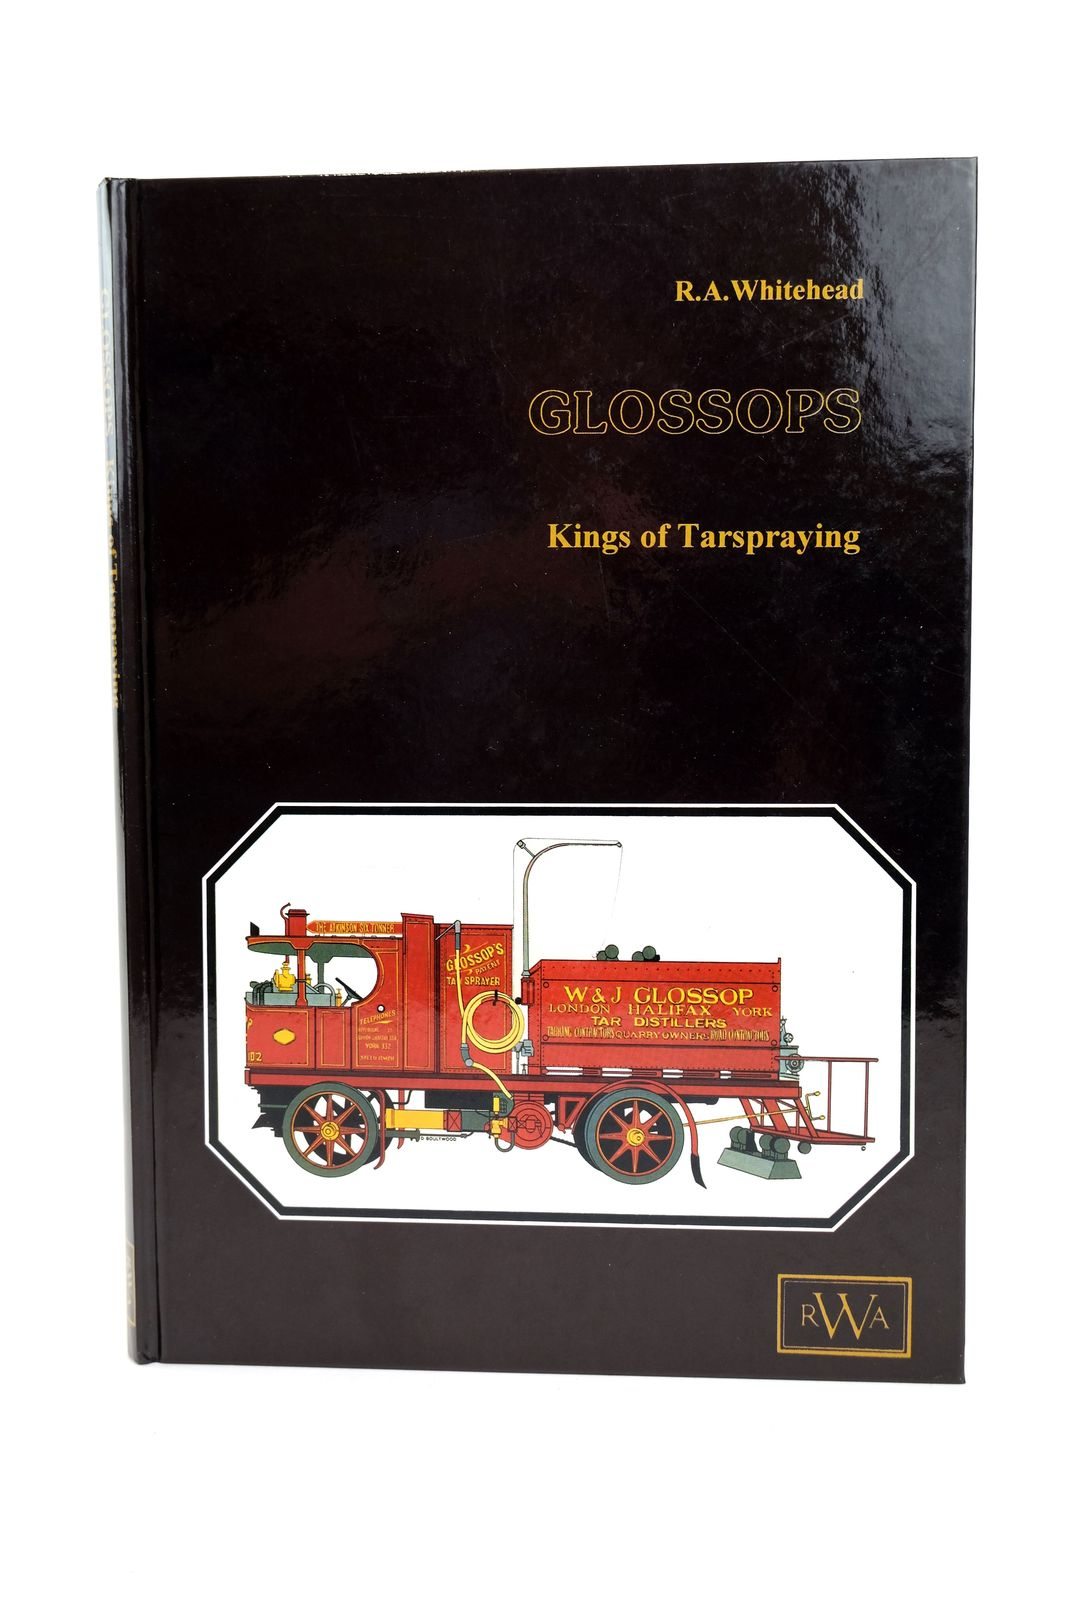 Photo of GLOSSOPS: KINGS OF TARSPRAYING written by Whitehead, R.A. published by R.A. Whitehead & Partners (STOCK CODE: 1818681)  for sale by Stella & Rose's Books